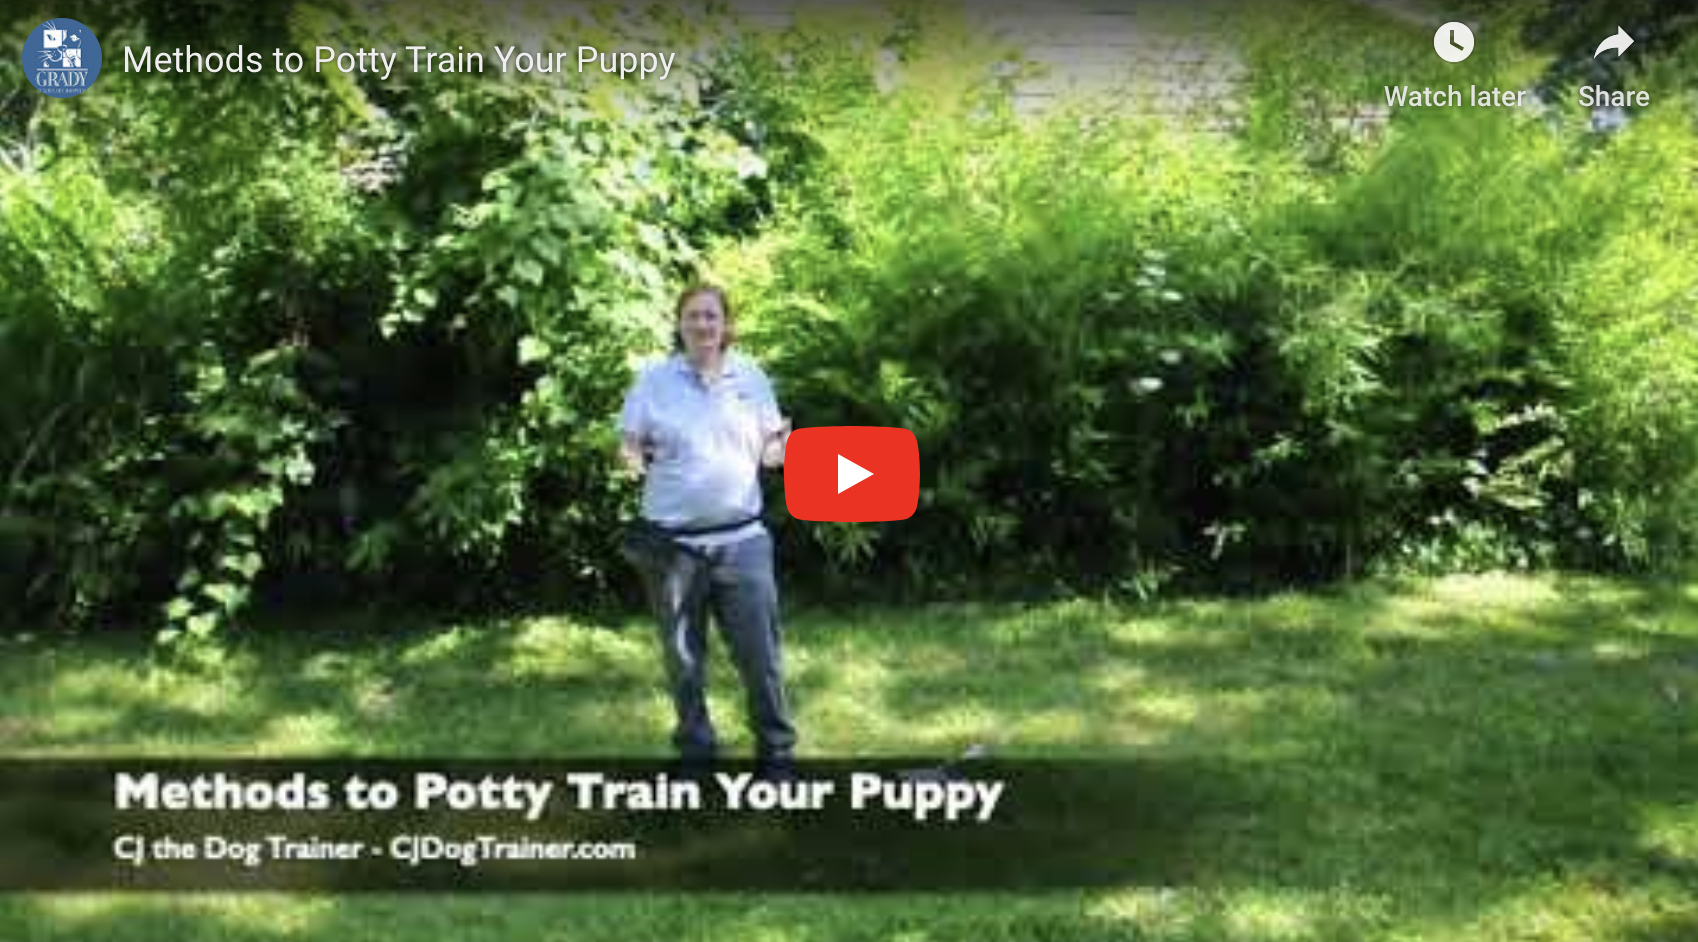 Methods to Potty Train Your Puppy